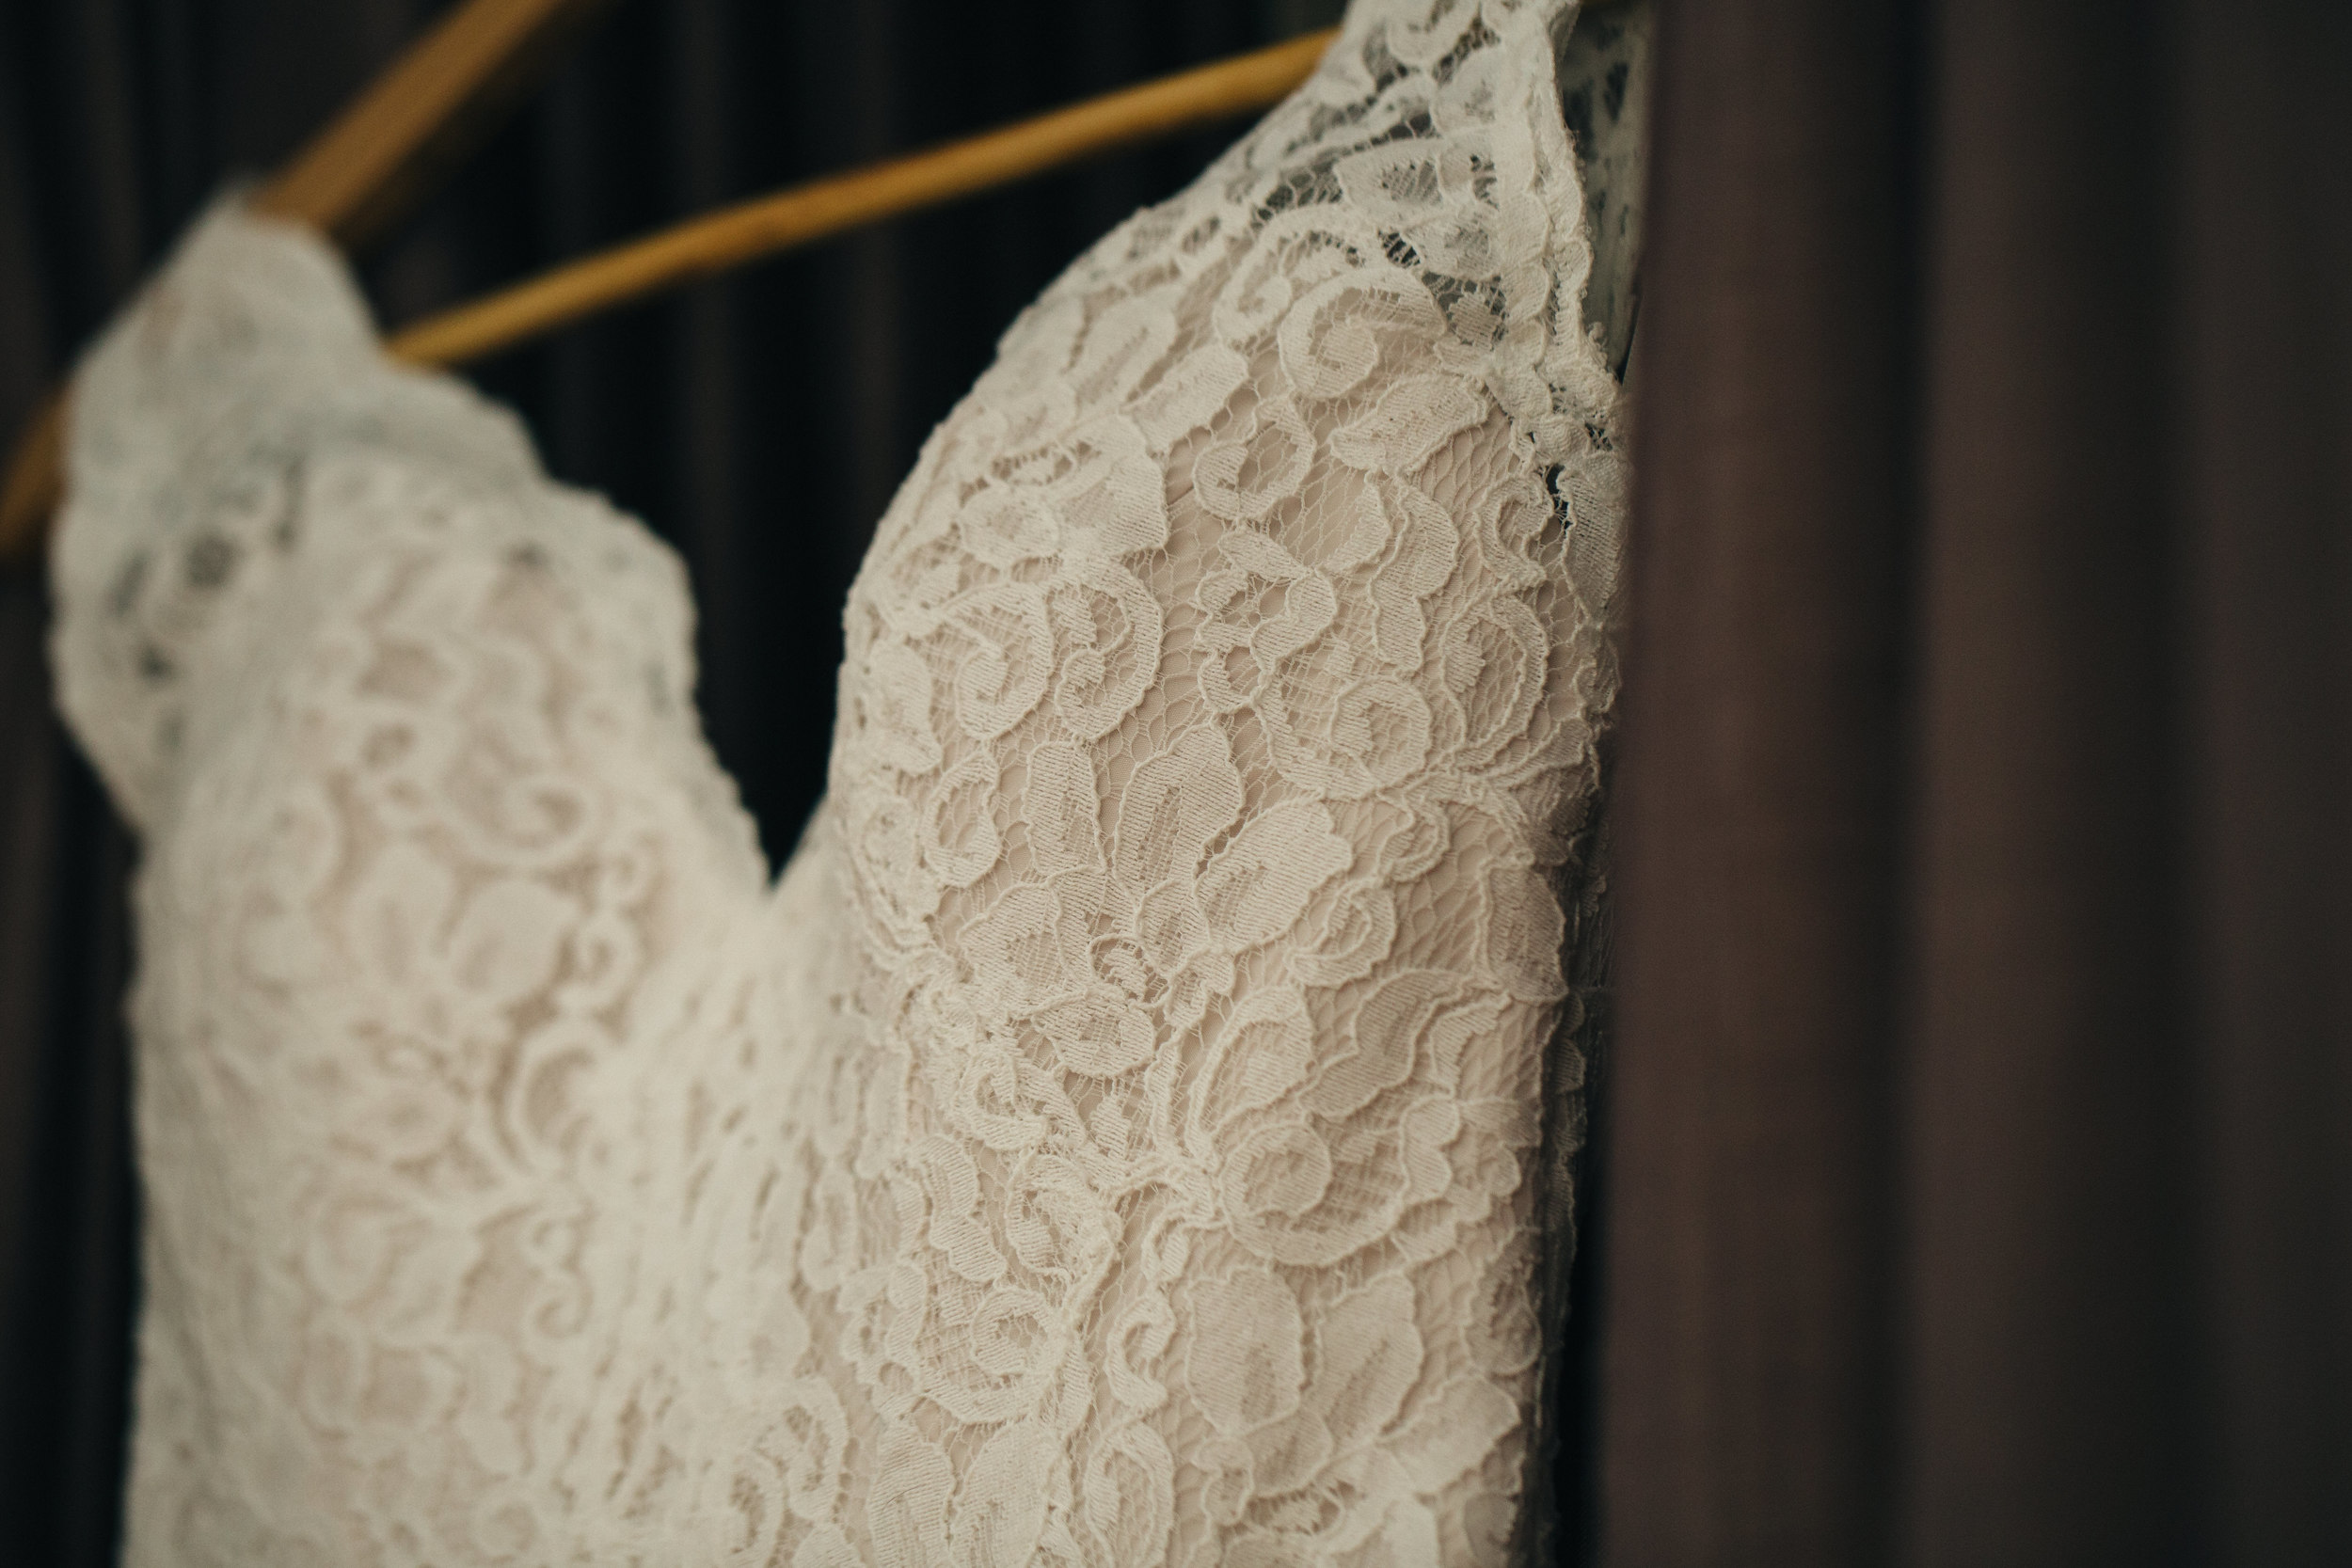 Lace wedding dress by Mikaella Bridal from Ivy Bridal in Columbus, Ohio.